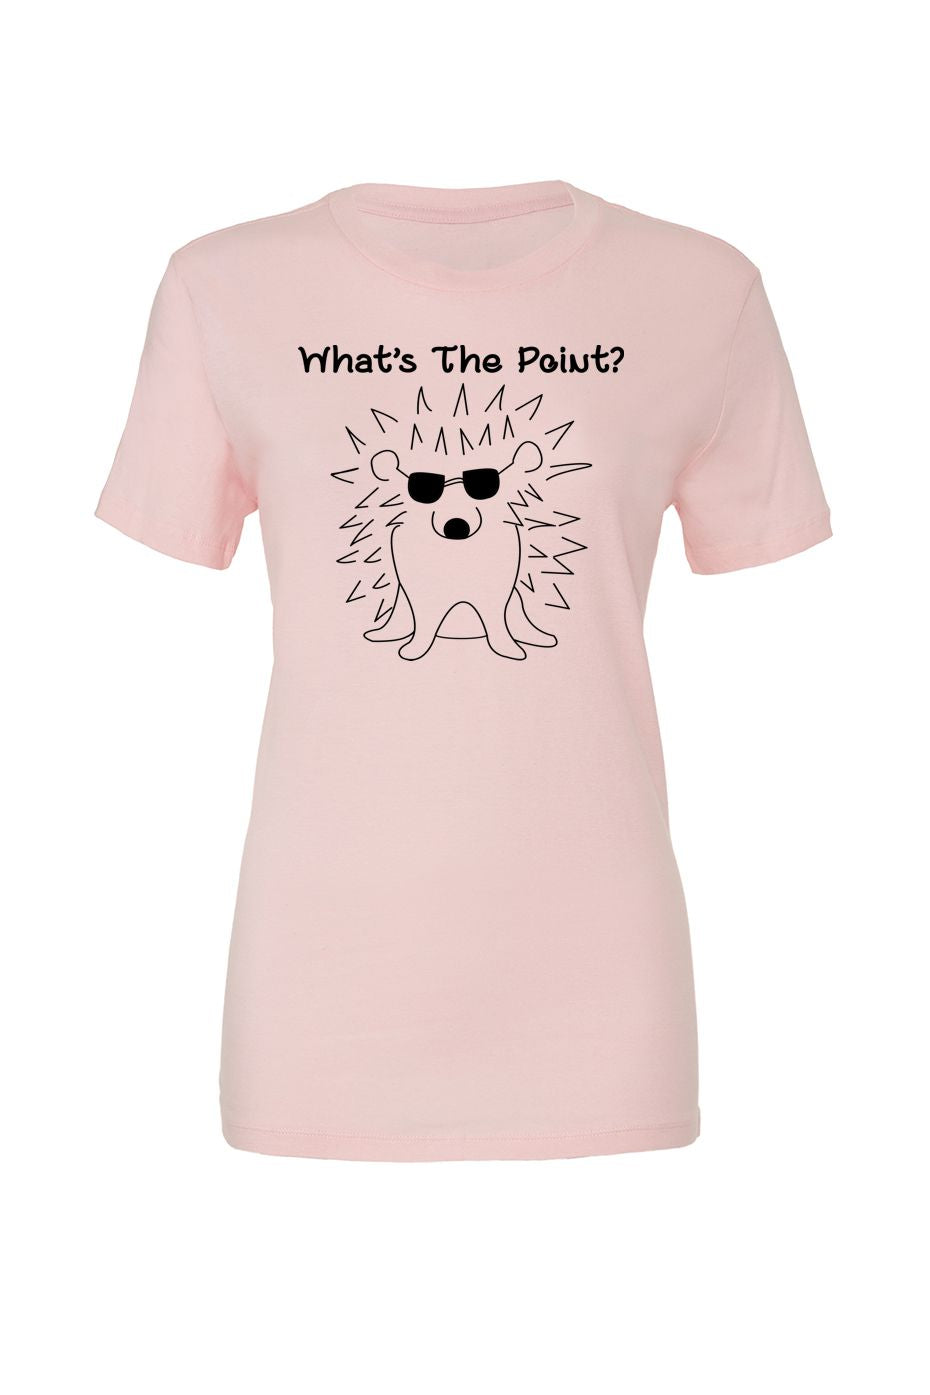 What's the Point?  Women's tee in pink